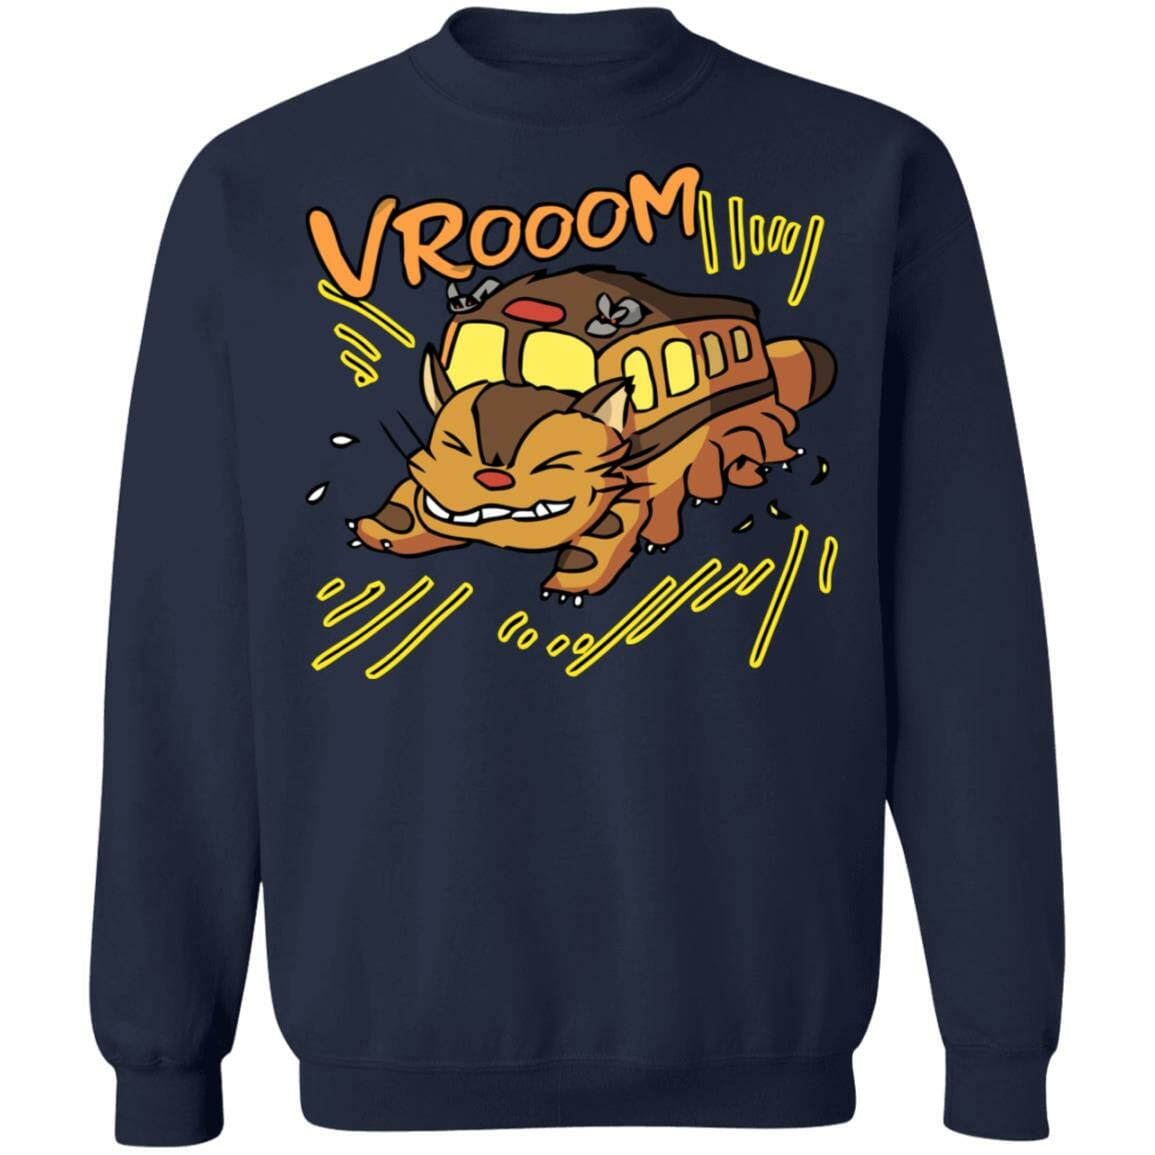 My Neighbor Totoro – Cat Bus Sweatshirt Unisex